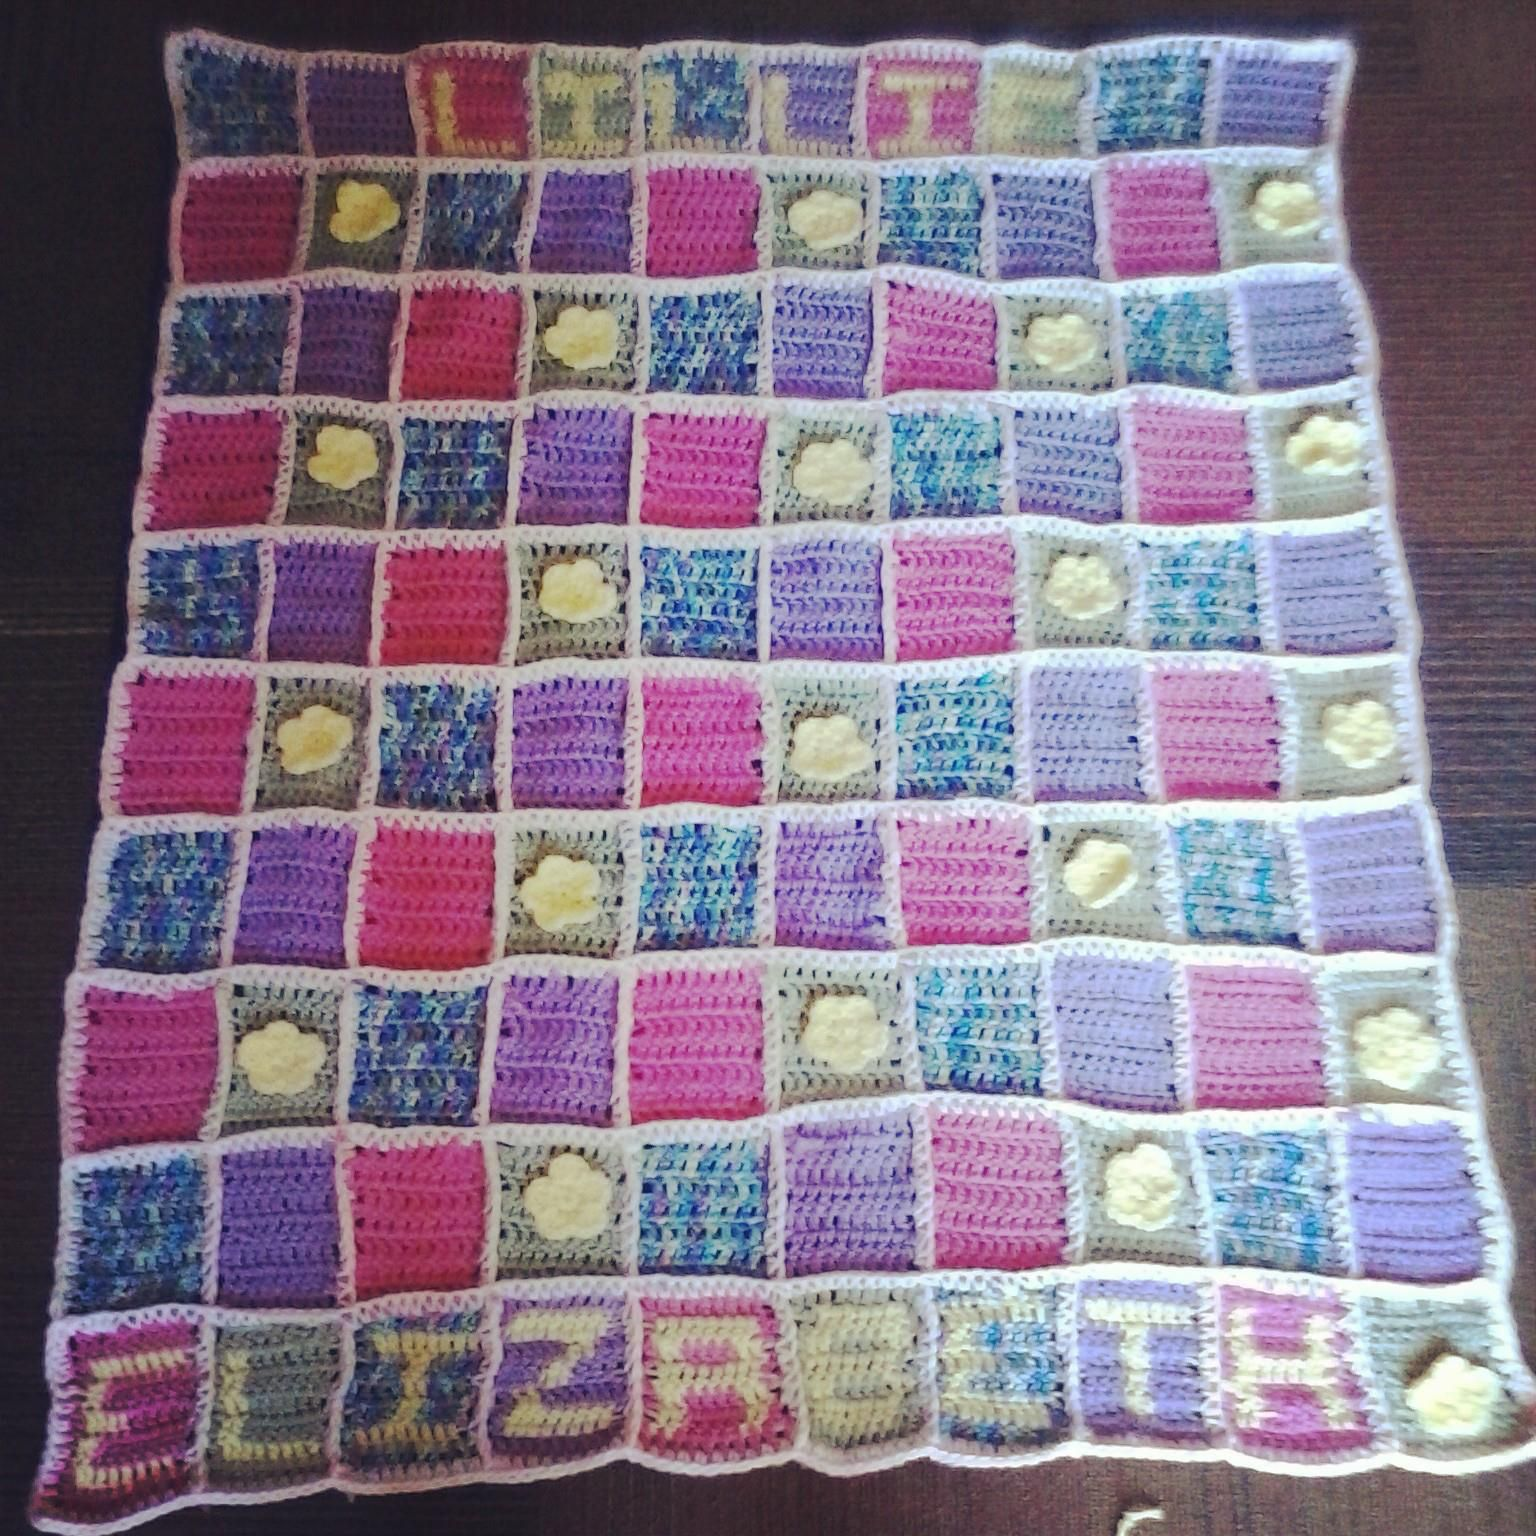 Crocheting Names On Blankets : Crochet Baby blanket with Name Crochet Projects Pinterest